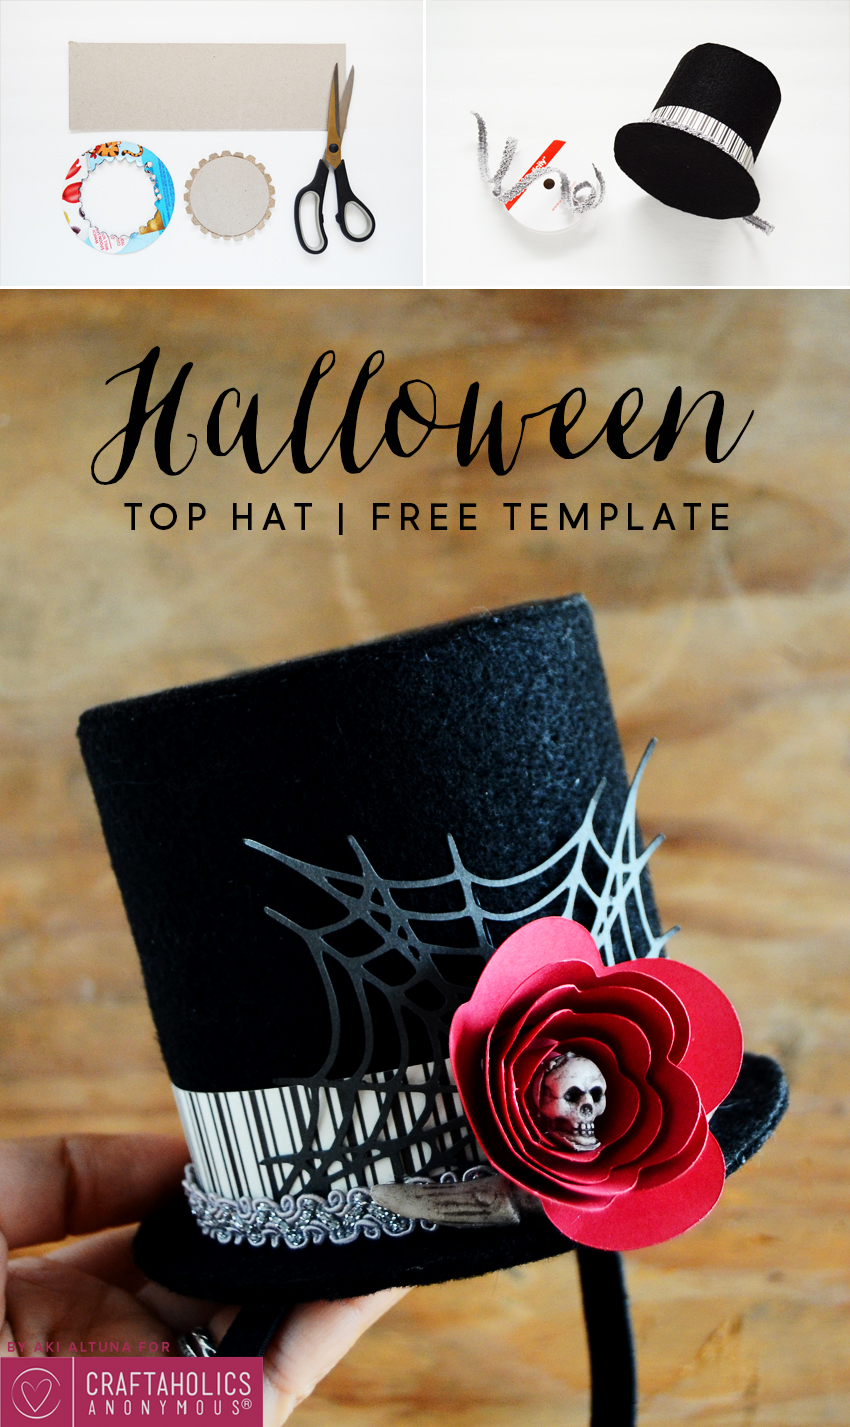 Halloween Top Hat Tutorial :: Make your own DIY hat for your costume this year! Free template download + Free SVG cut file.